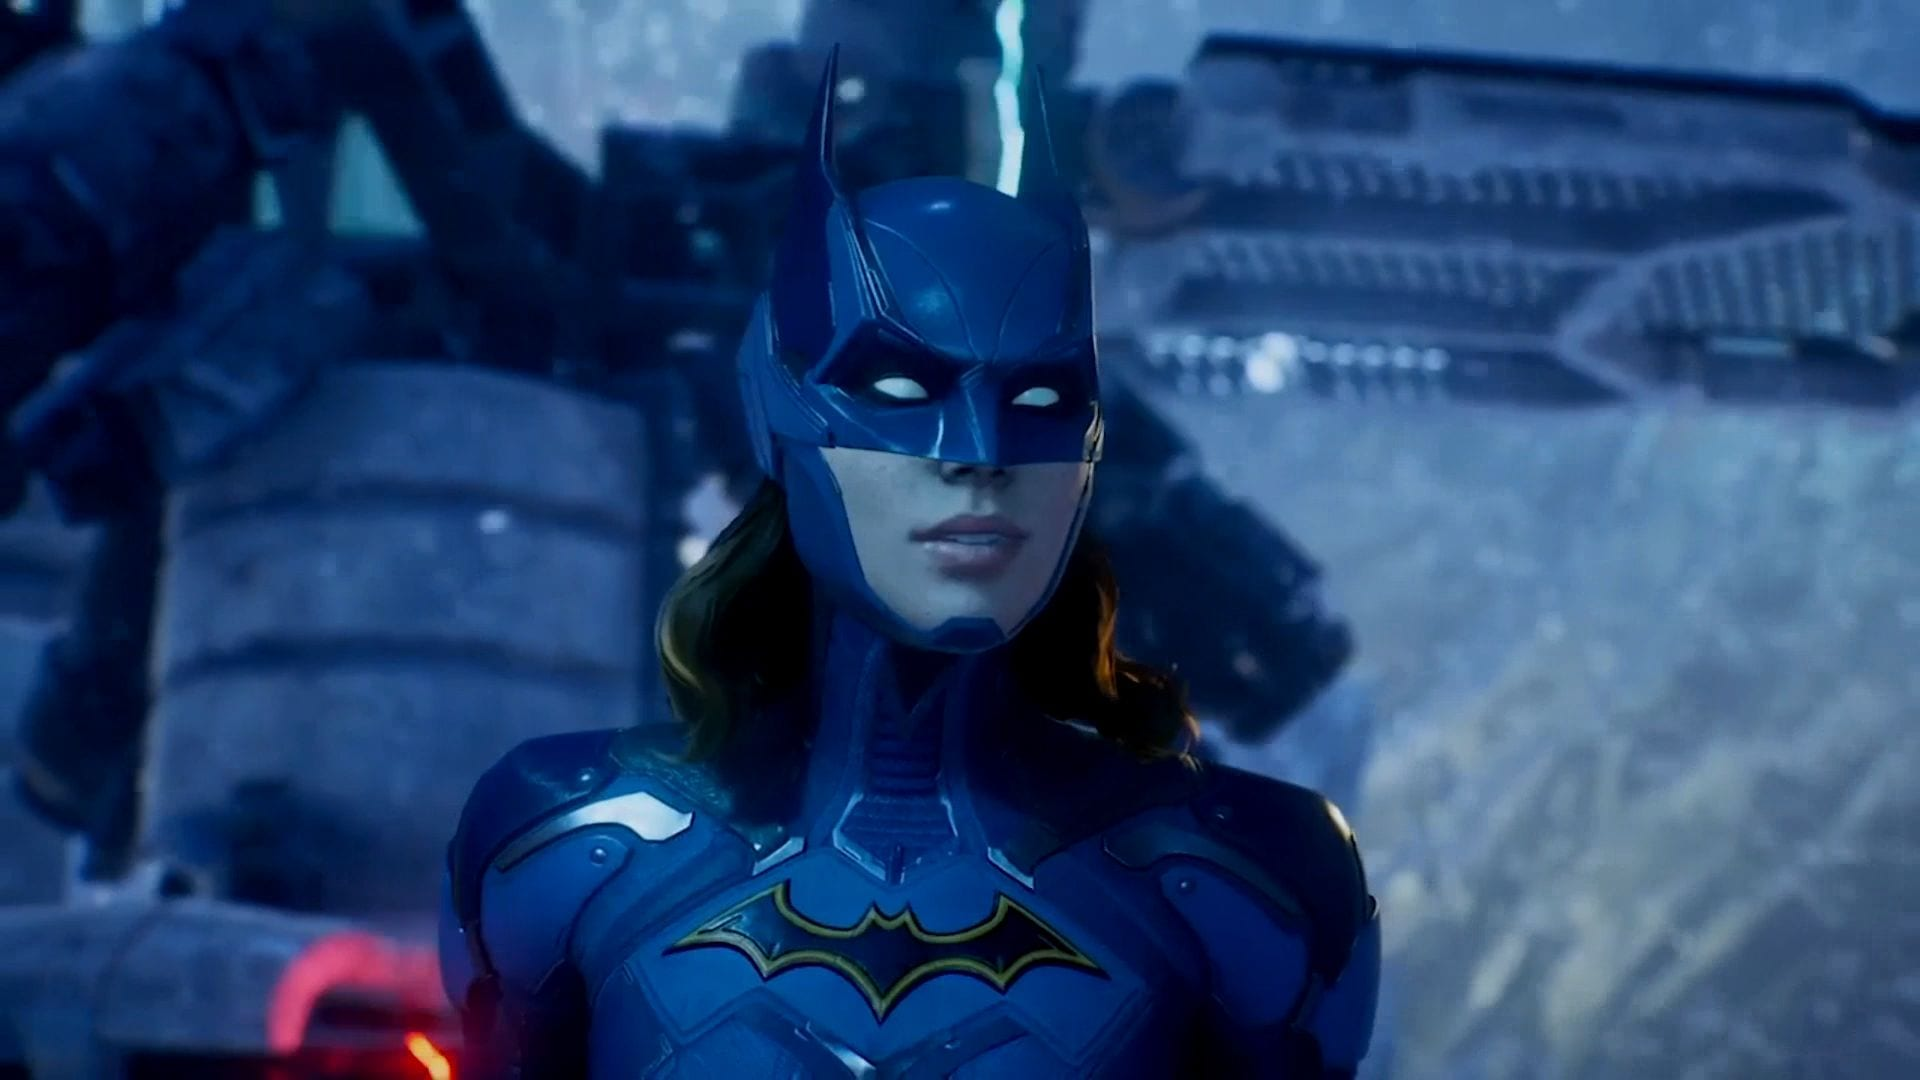 Gotham Knights Announced for PS5, Xbox Series X, & More; Watch Batgirl in Action in First Gameplay